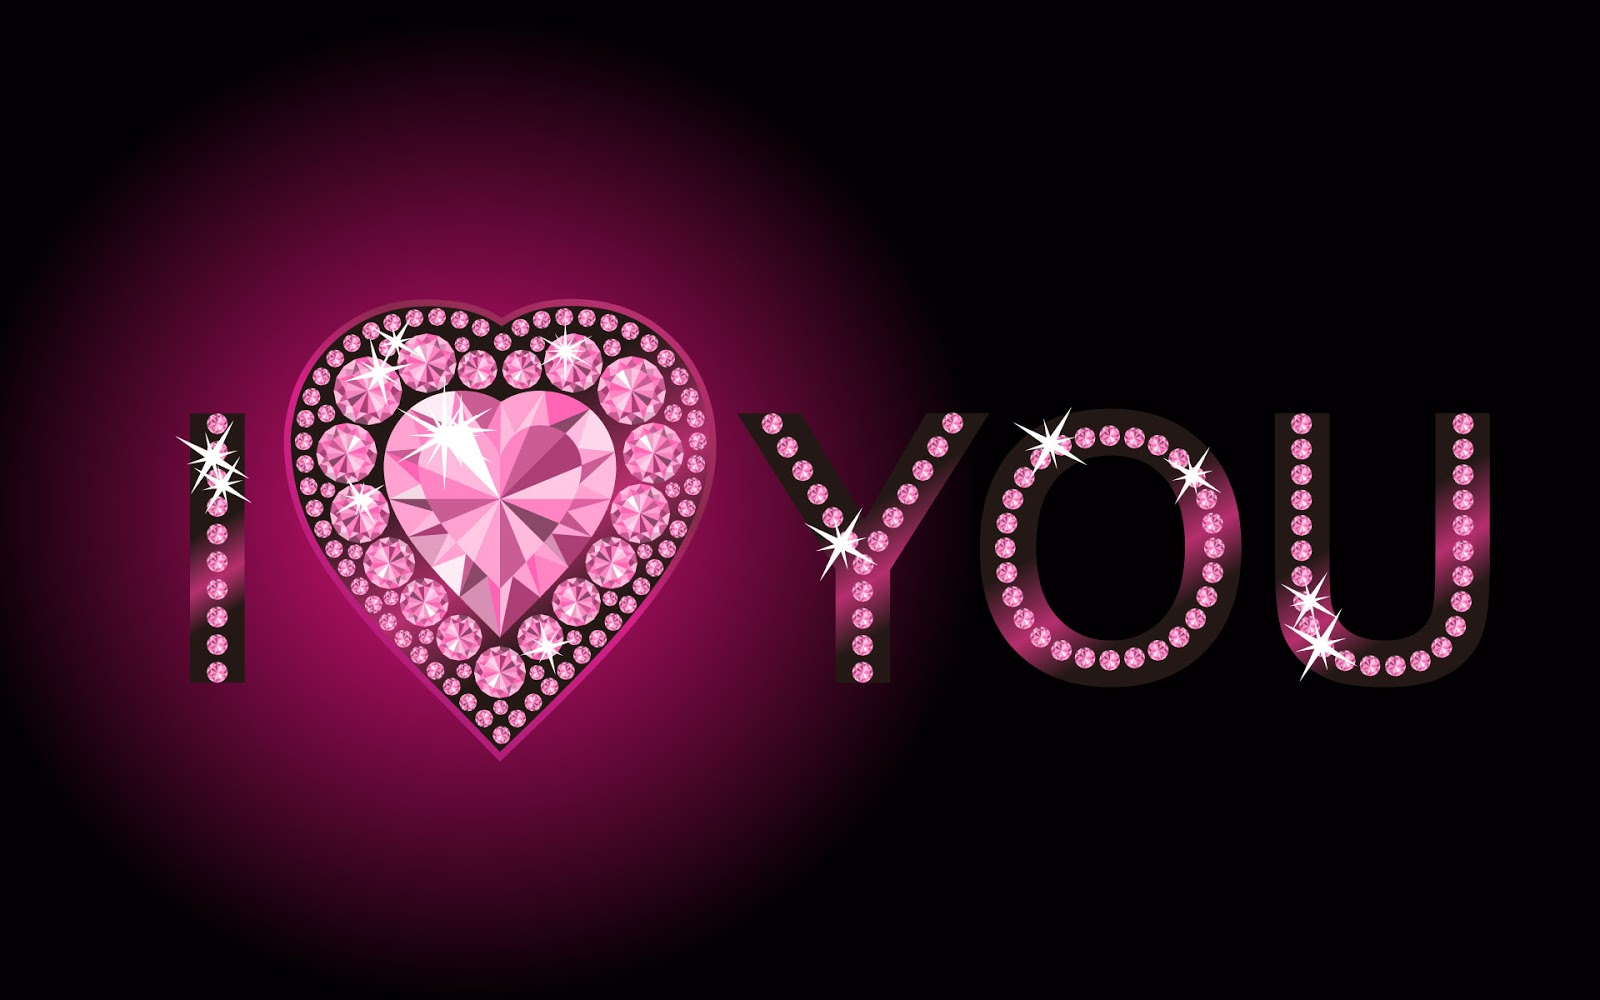 Windows 7 Themes And Wallpapers Cute Beautiful Valentine